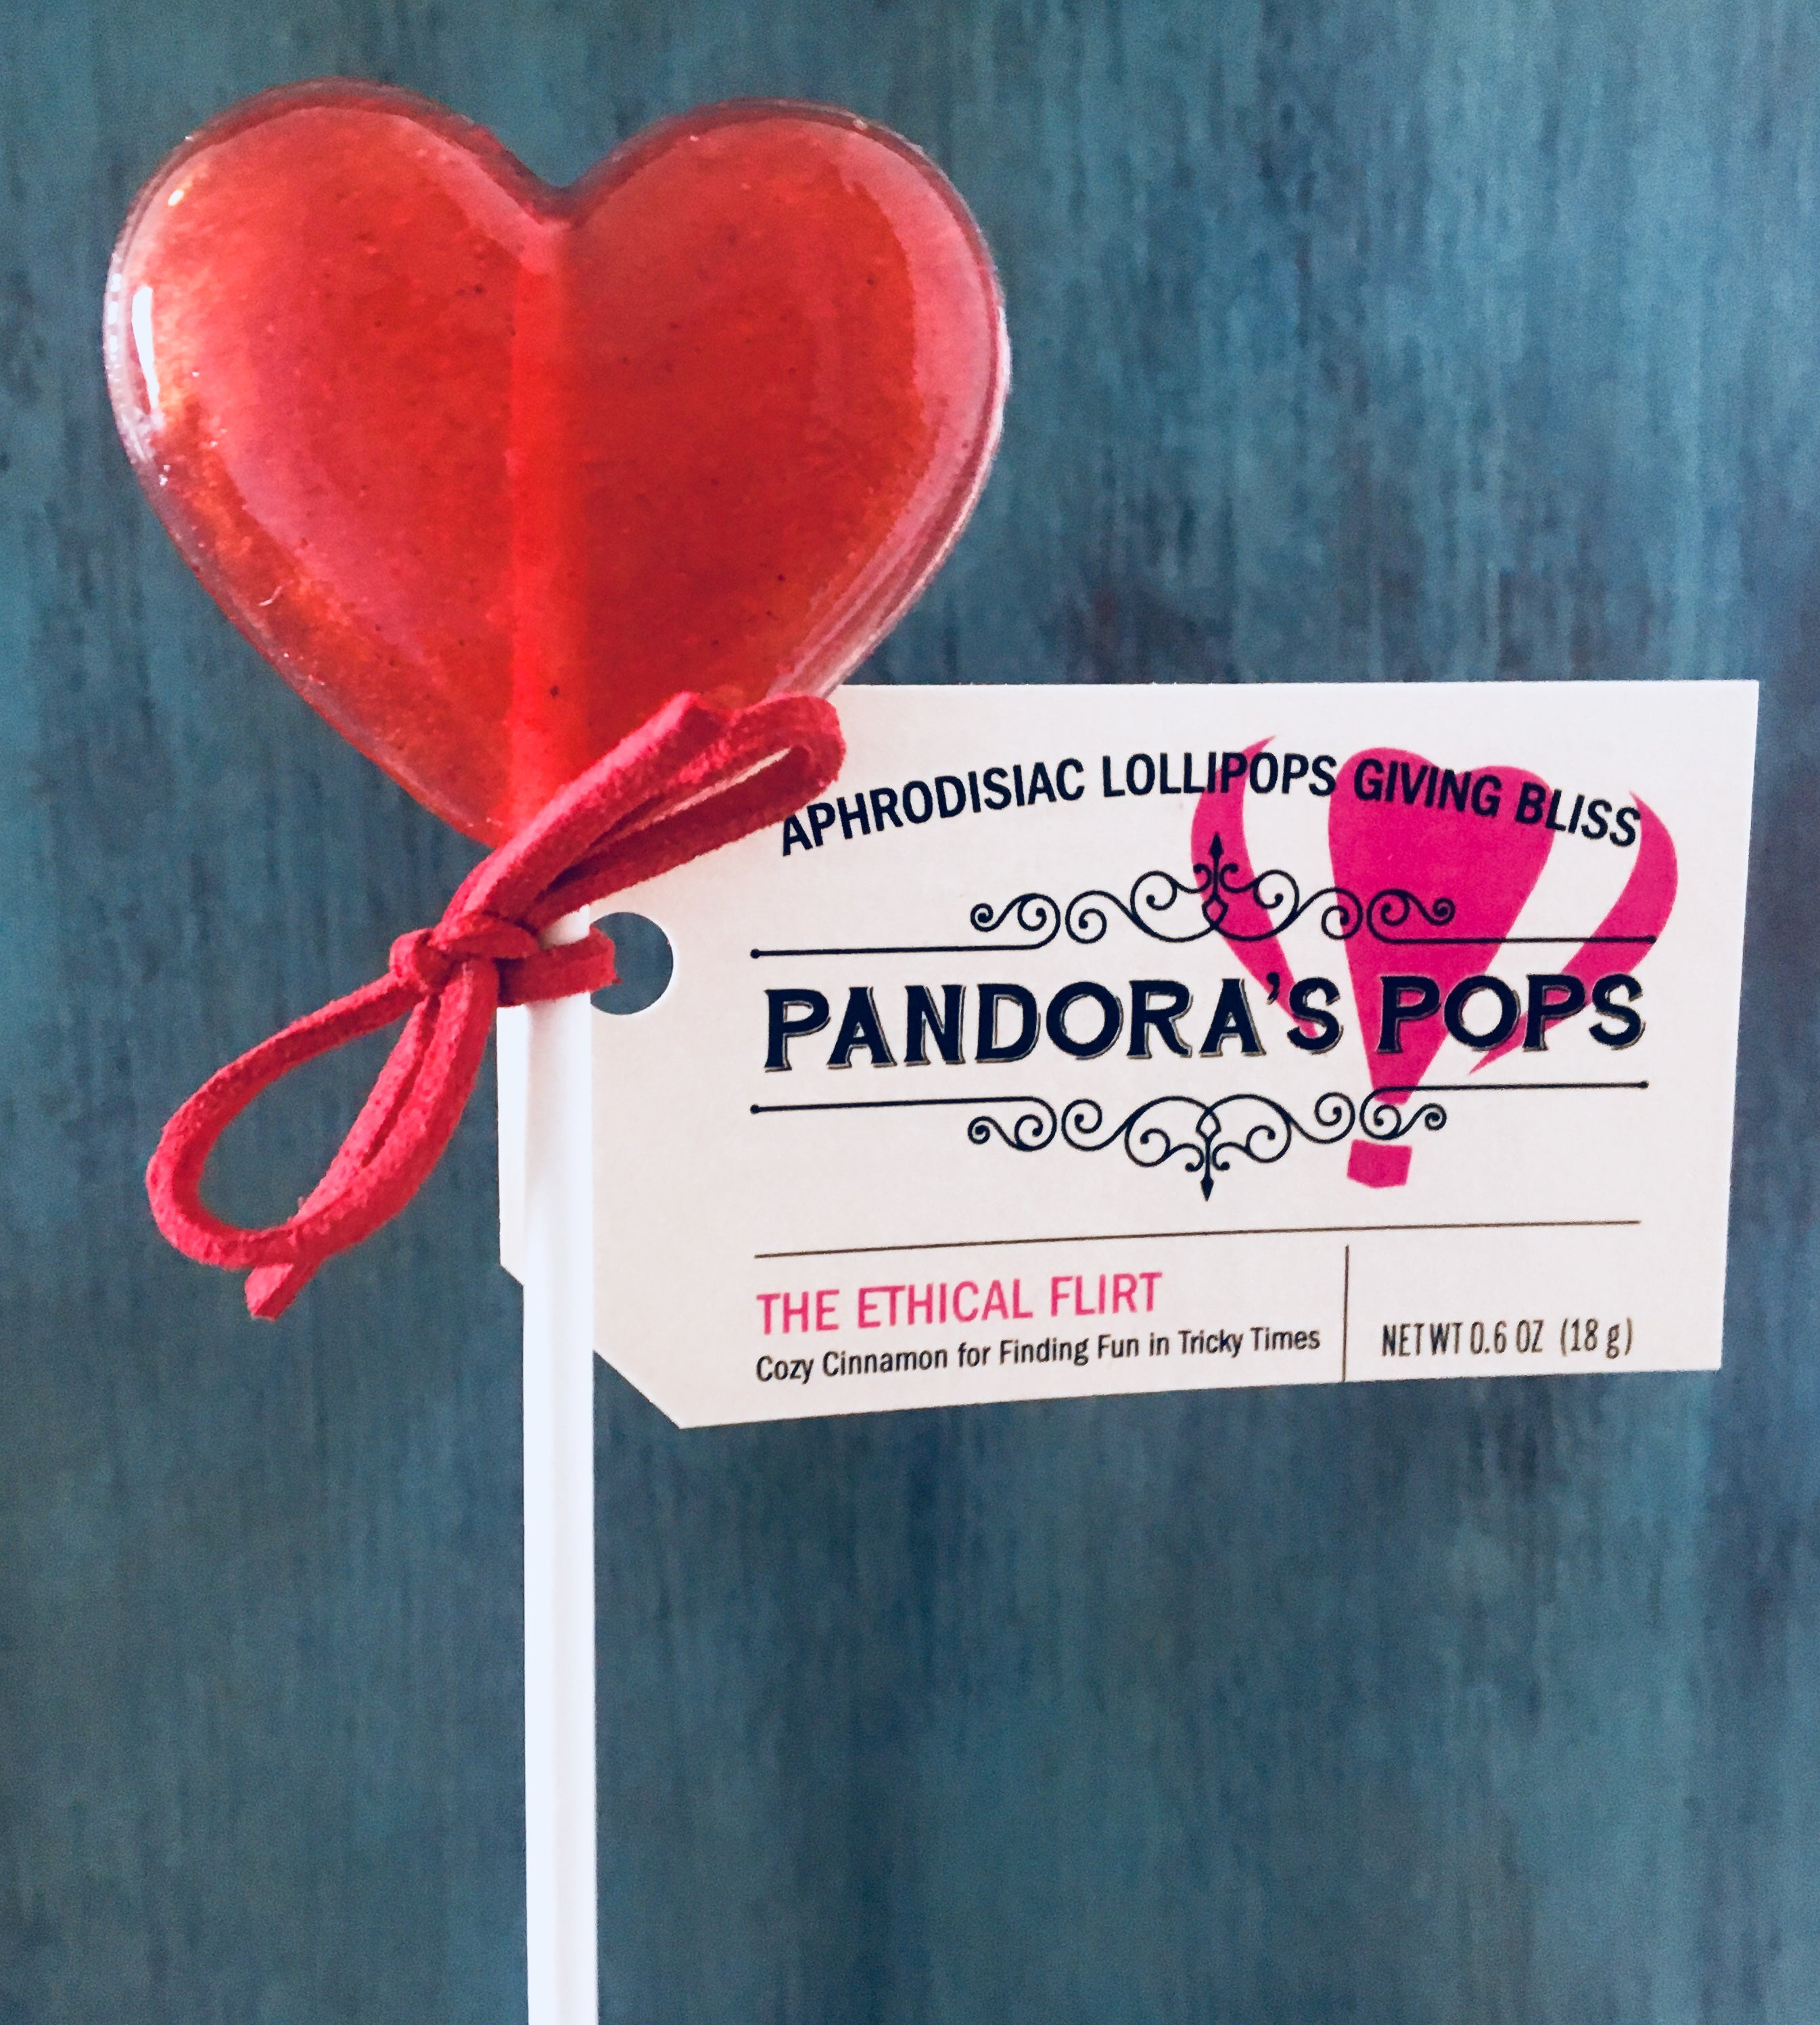 The Ethical Flirt Aphrodisiac Lollipops